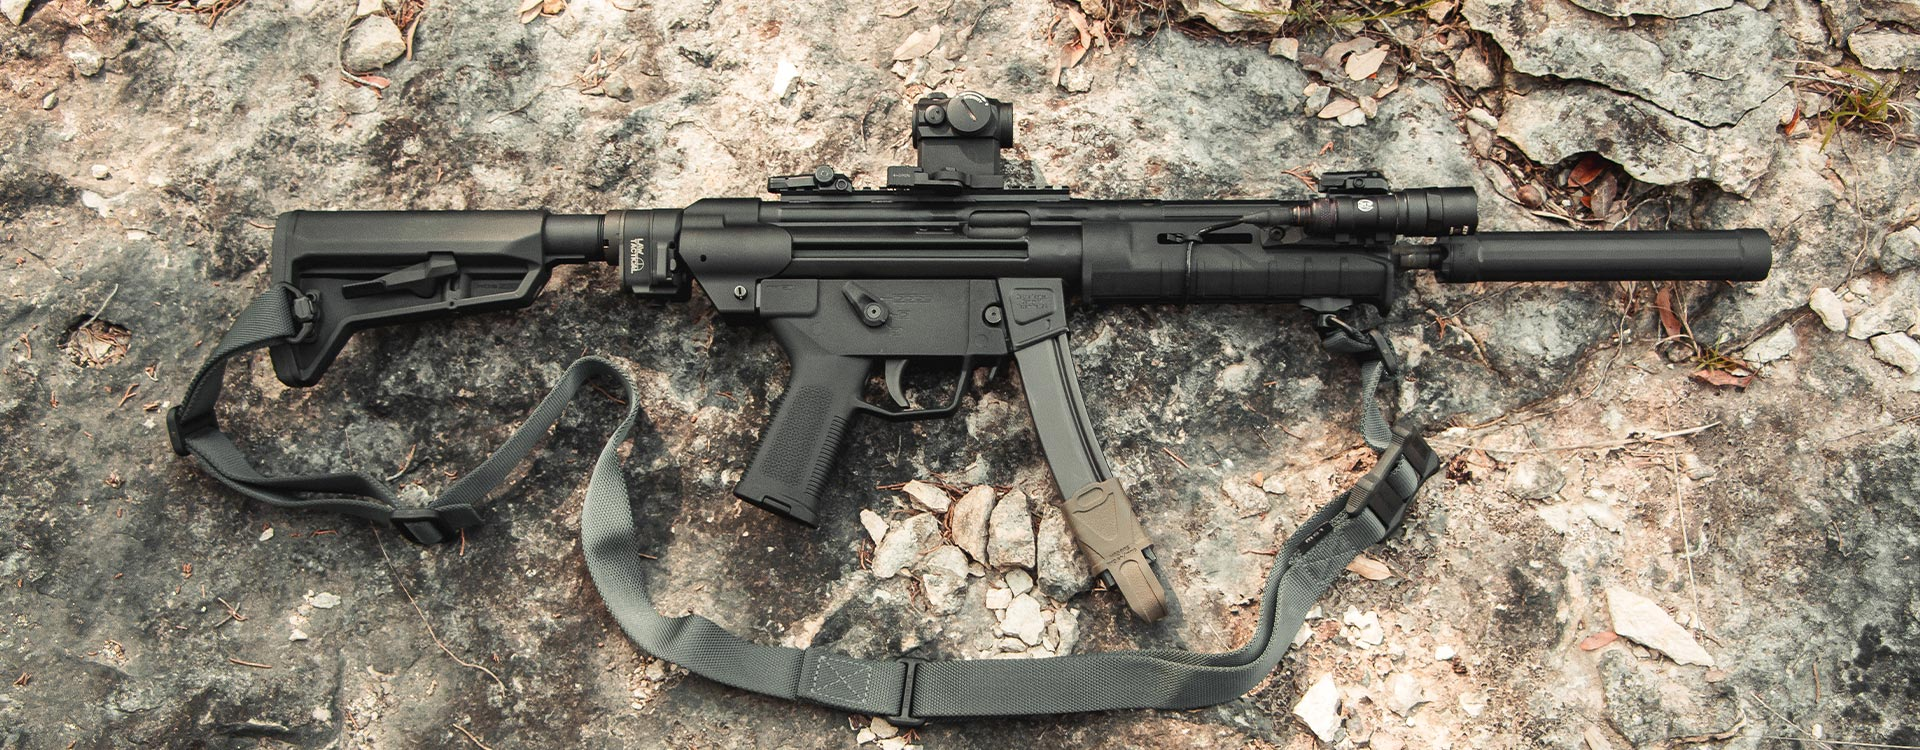 Magpul SL Grip Module on an MP5 with ESK, SL Hand Guard, SL-K Stock, 9mm Magpul, and MS4 QDM Sling on a rock background